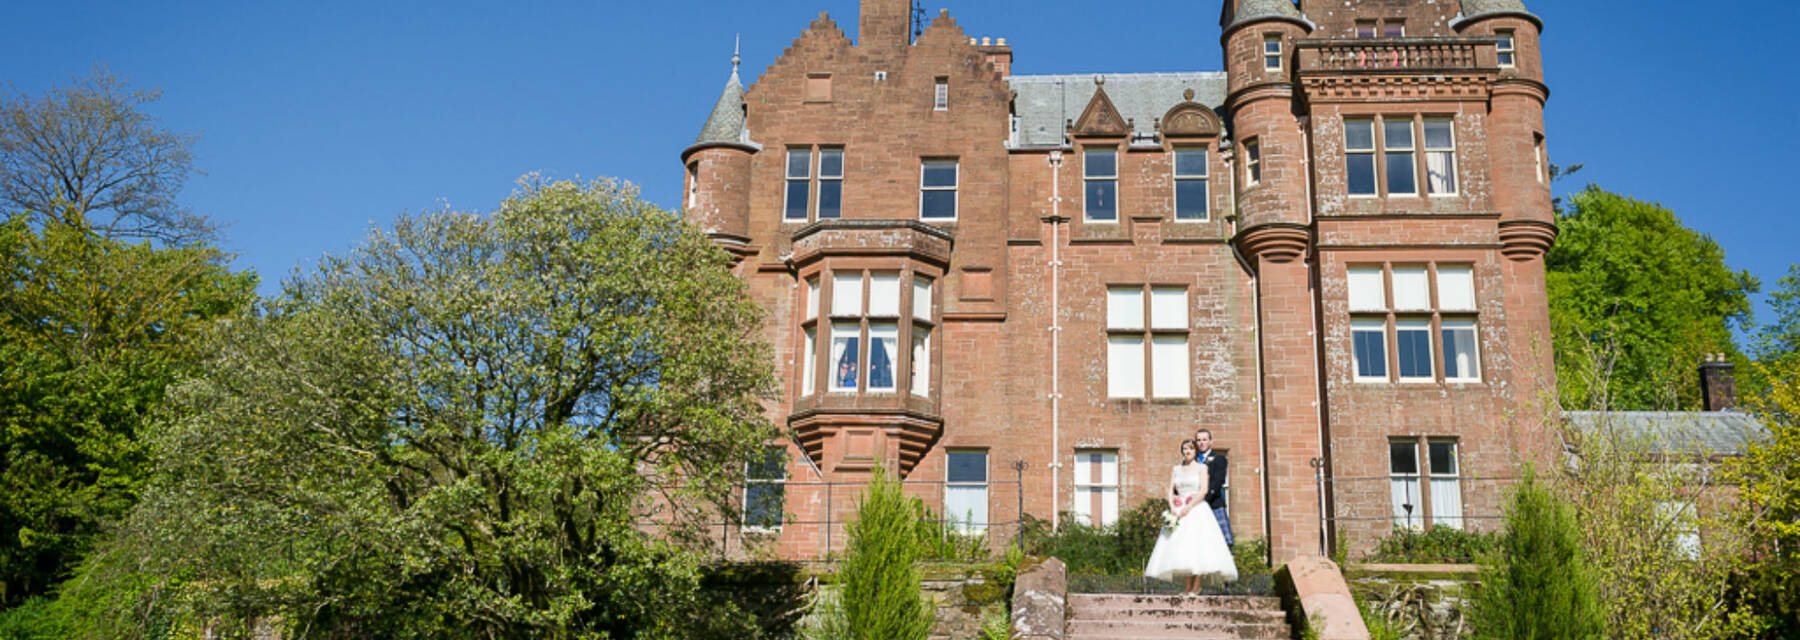 Threave House seen from the garden, with a bride and groom standing on the steps